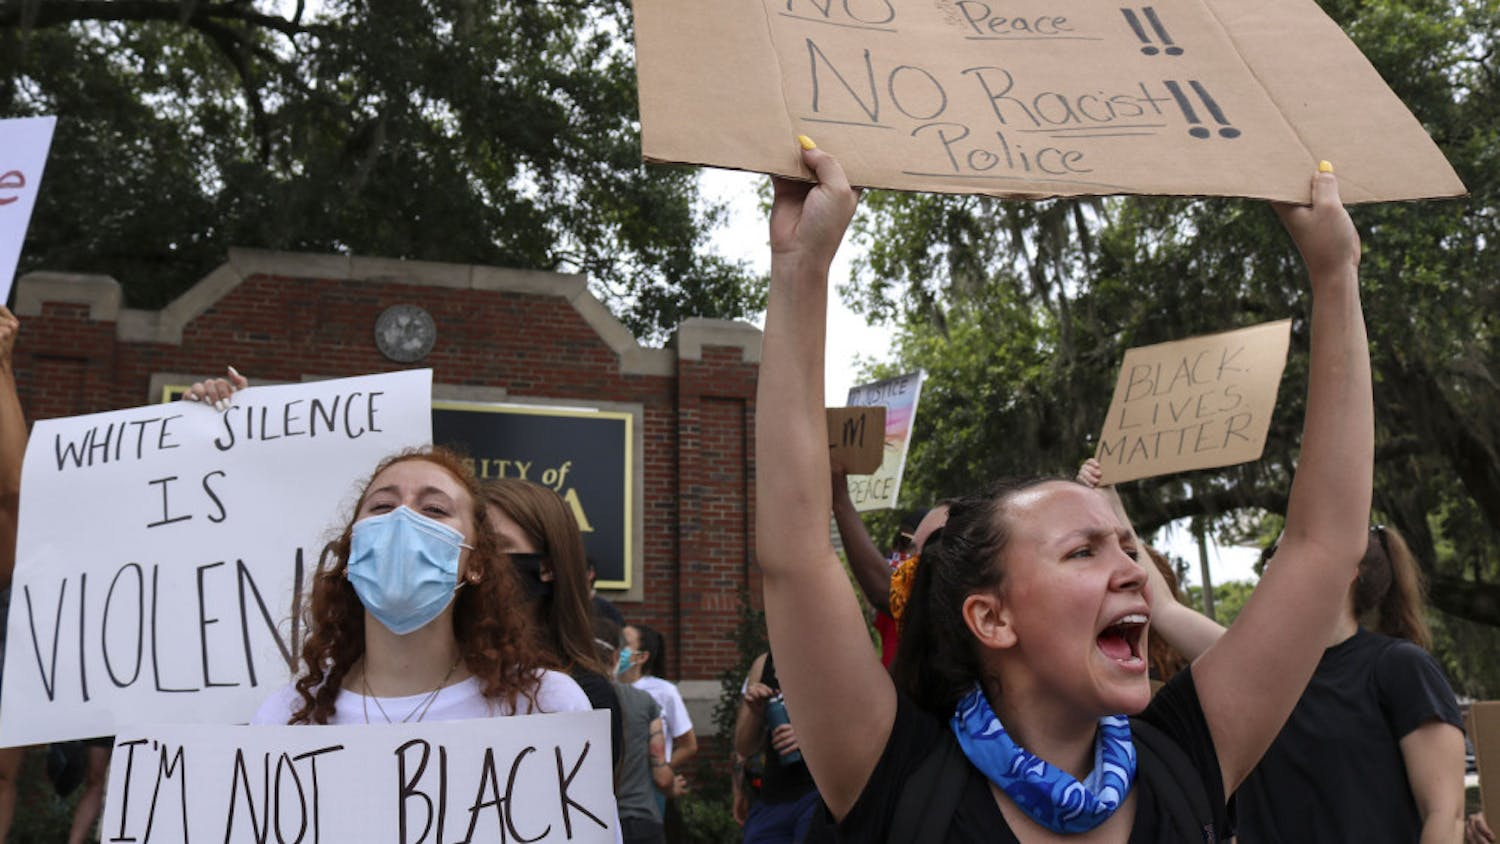 Alexzandria Rogers, a 22-year-old UCF political science major and Gainesville resident, shouts as protestors demand justice for George Floyd, an unarmed black man who was killed in Minneapolis police custody on May 25, 2020.